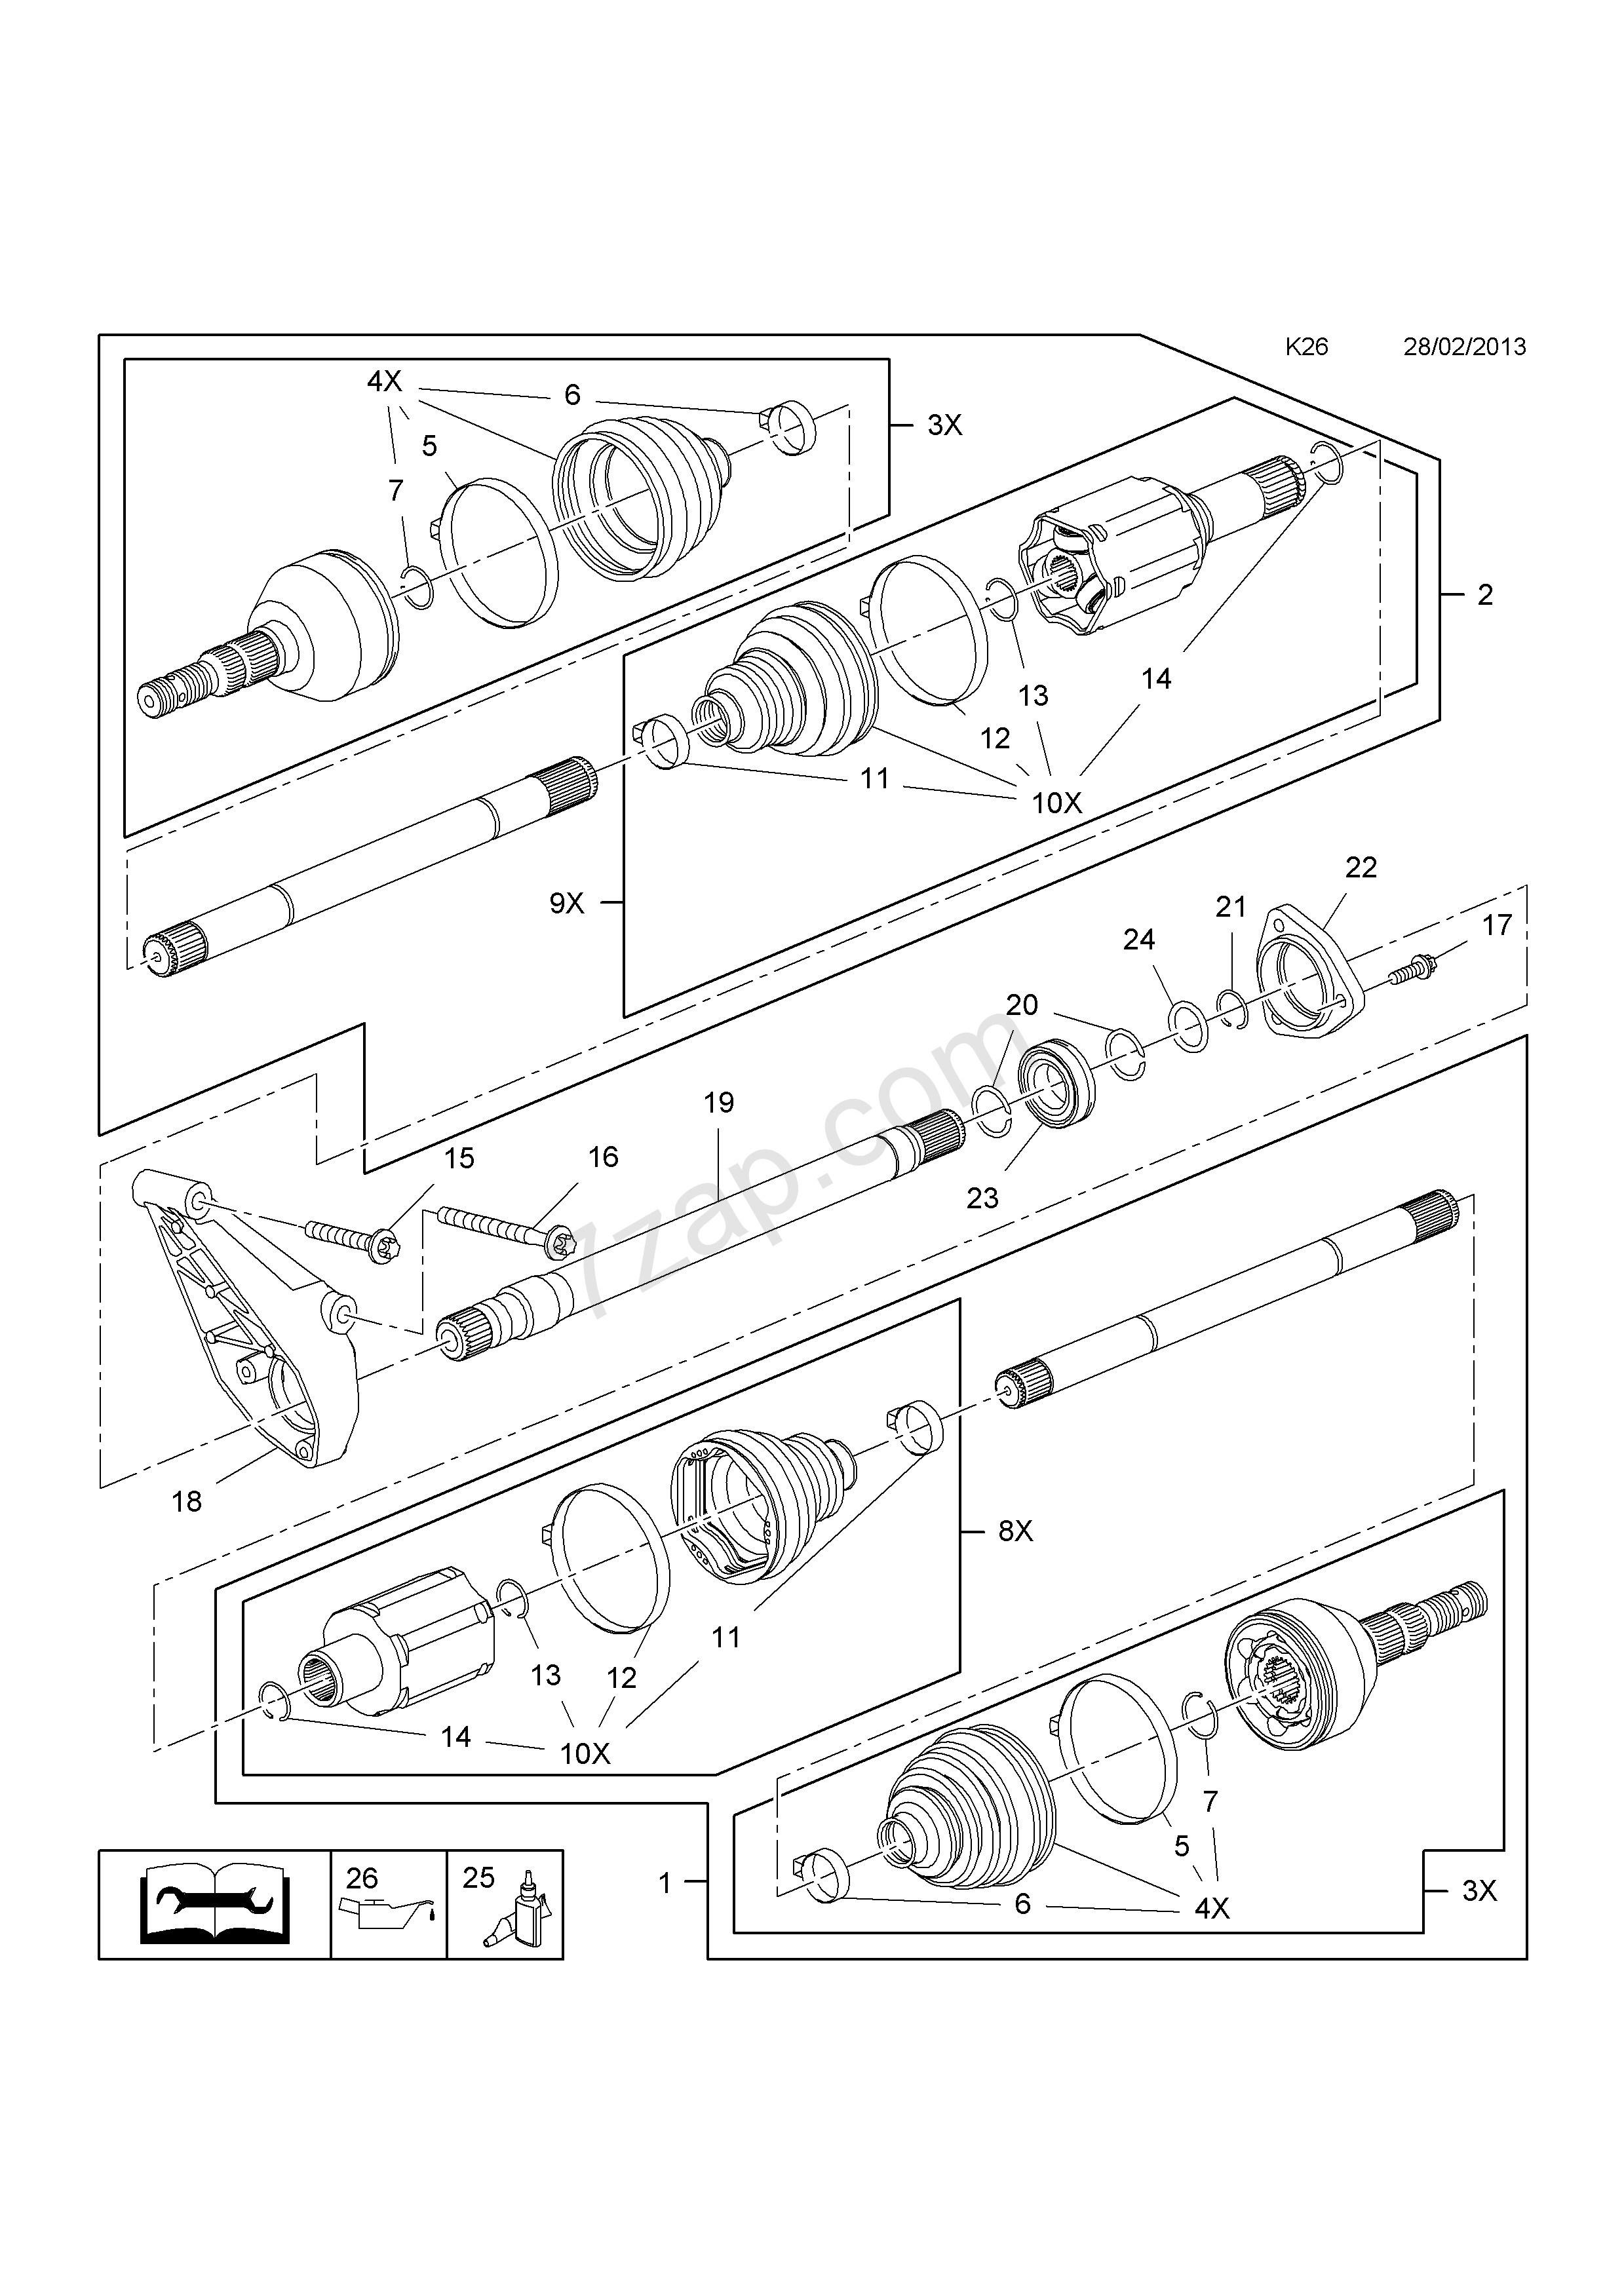 Car Drive Shaft Diagram Front Axle Drive Shaft [b14nel[luh] B14net[luj] Petrol Engines Used Of Car Drive Shaft Diagram